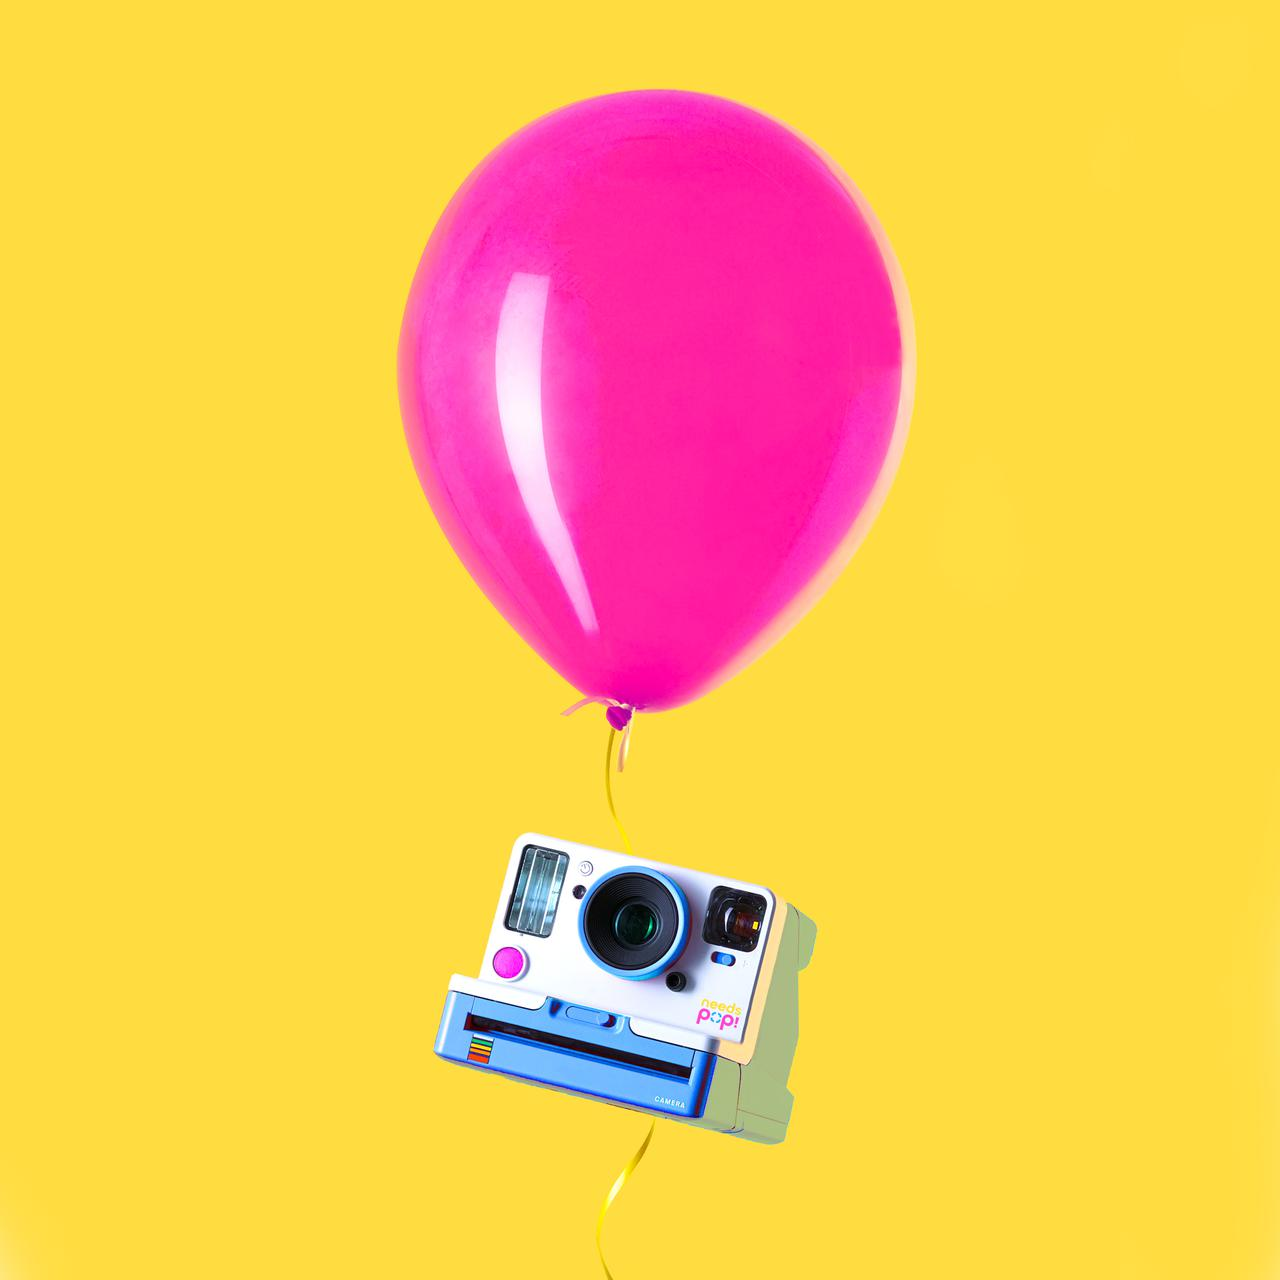 creative of camera and balloon by needs pop! from social media agency growthbuster